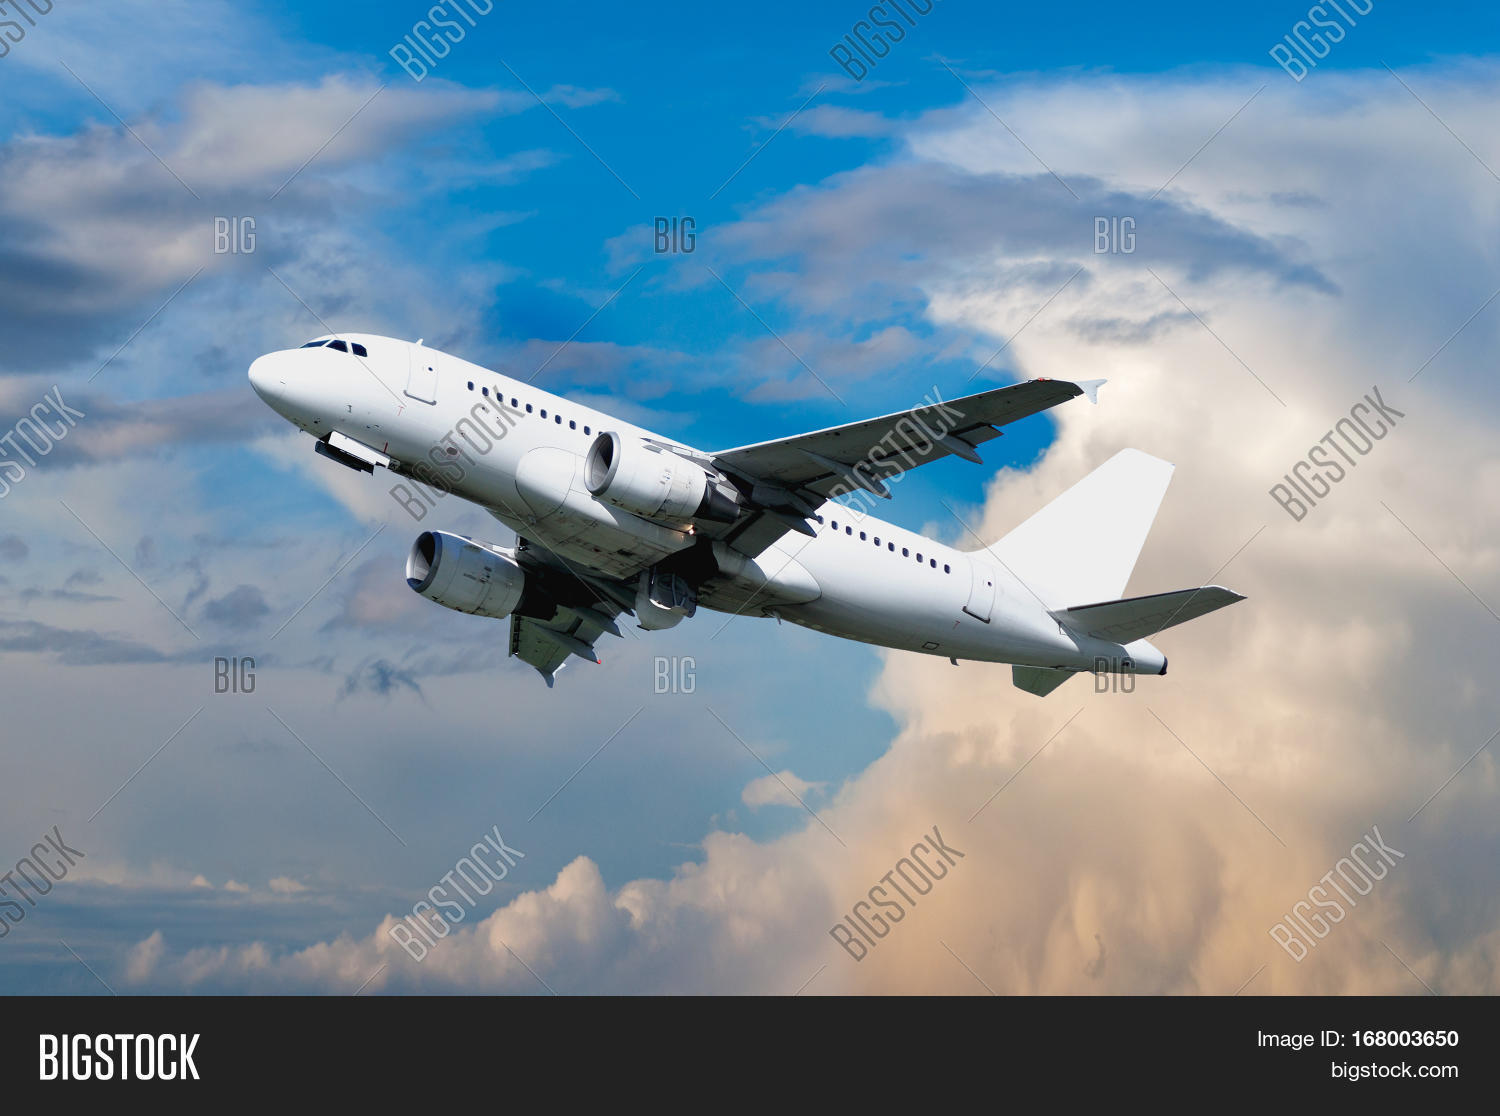 air,aircraft,airliner,airplane,atmosphere,aviation,background,big,blank,blue,business,cargo,cloud,cloudscape,cloudy,day,energy,engine,eye,flight,fly,fuselage,heaven,high,huge,jet,liner,livery,machine,modern,passenger,plane,power,red,sky,speed,sun,sunlight,sunny,takeoff,technology,tourism,transport,transportation,travel,trip,turbine,vacation,white